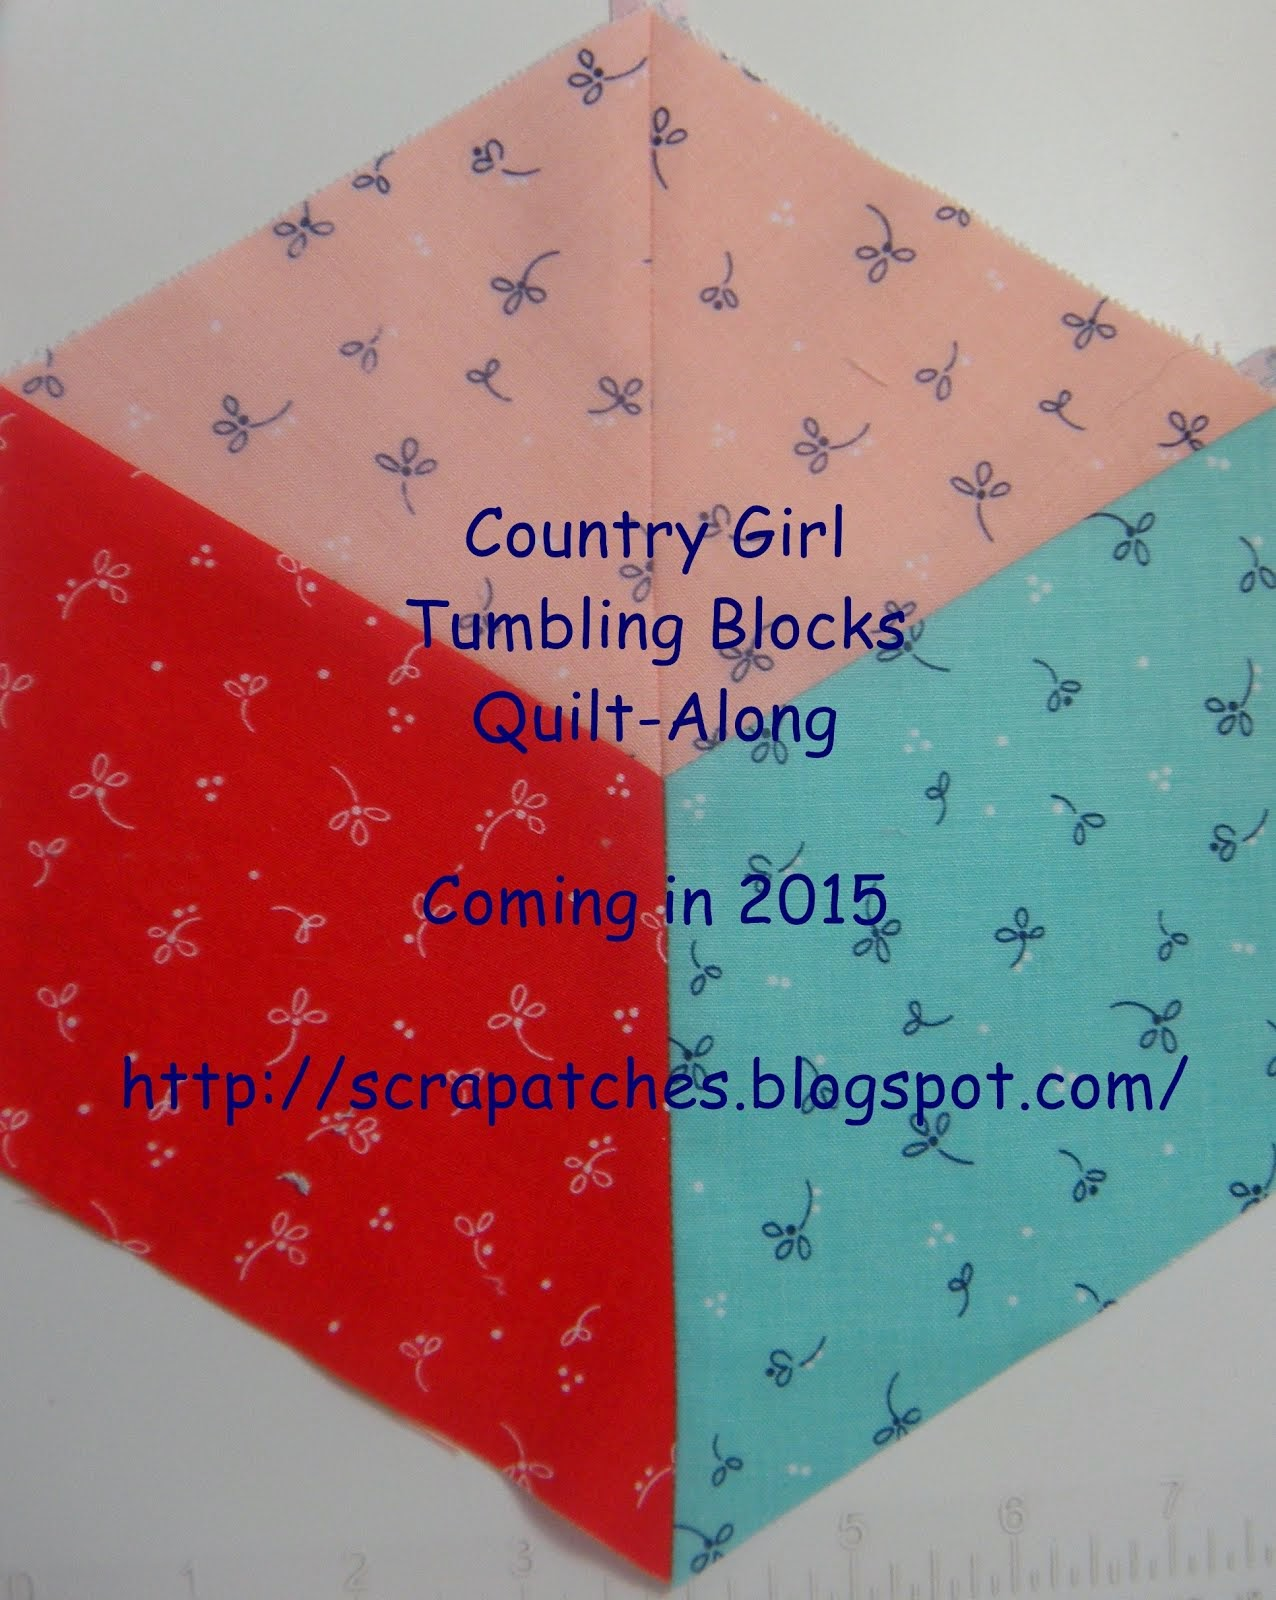 Country Girl Tumbling Blocks Quilt-Along